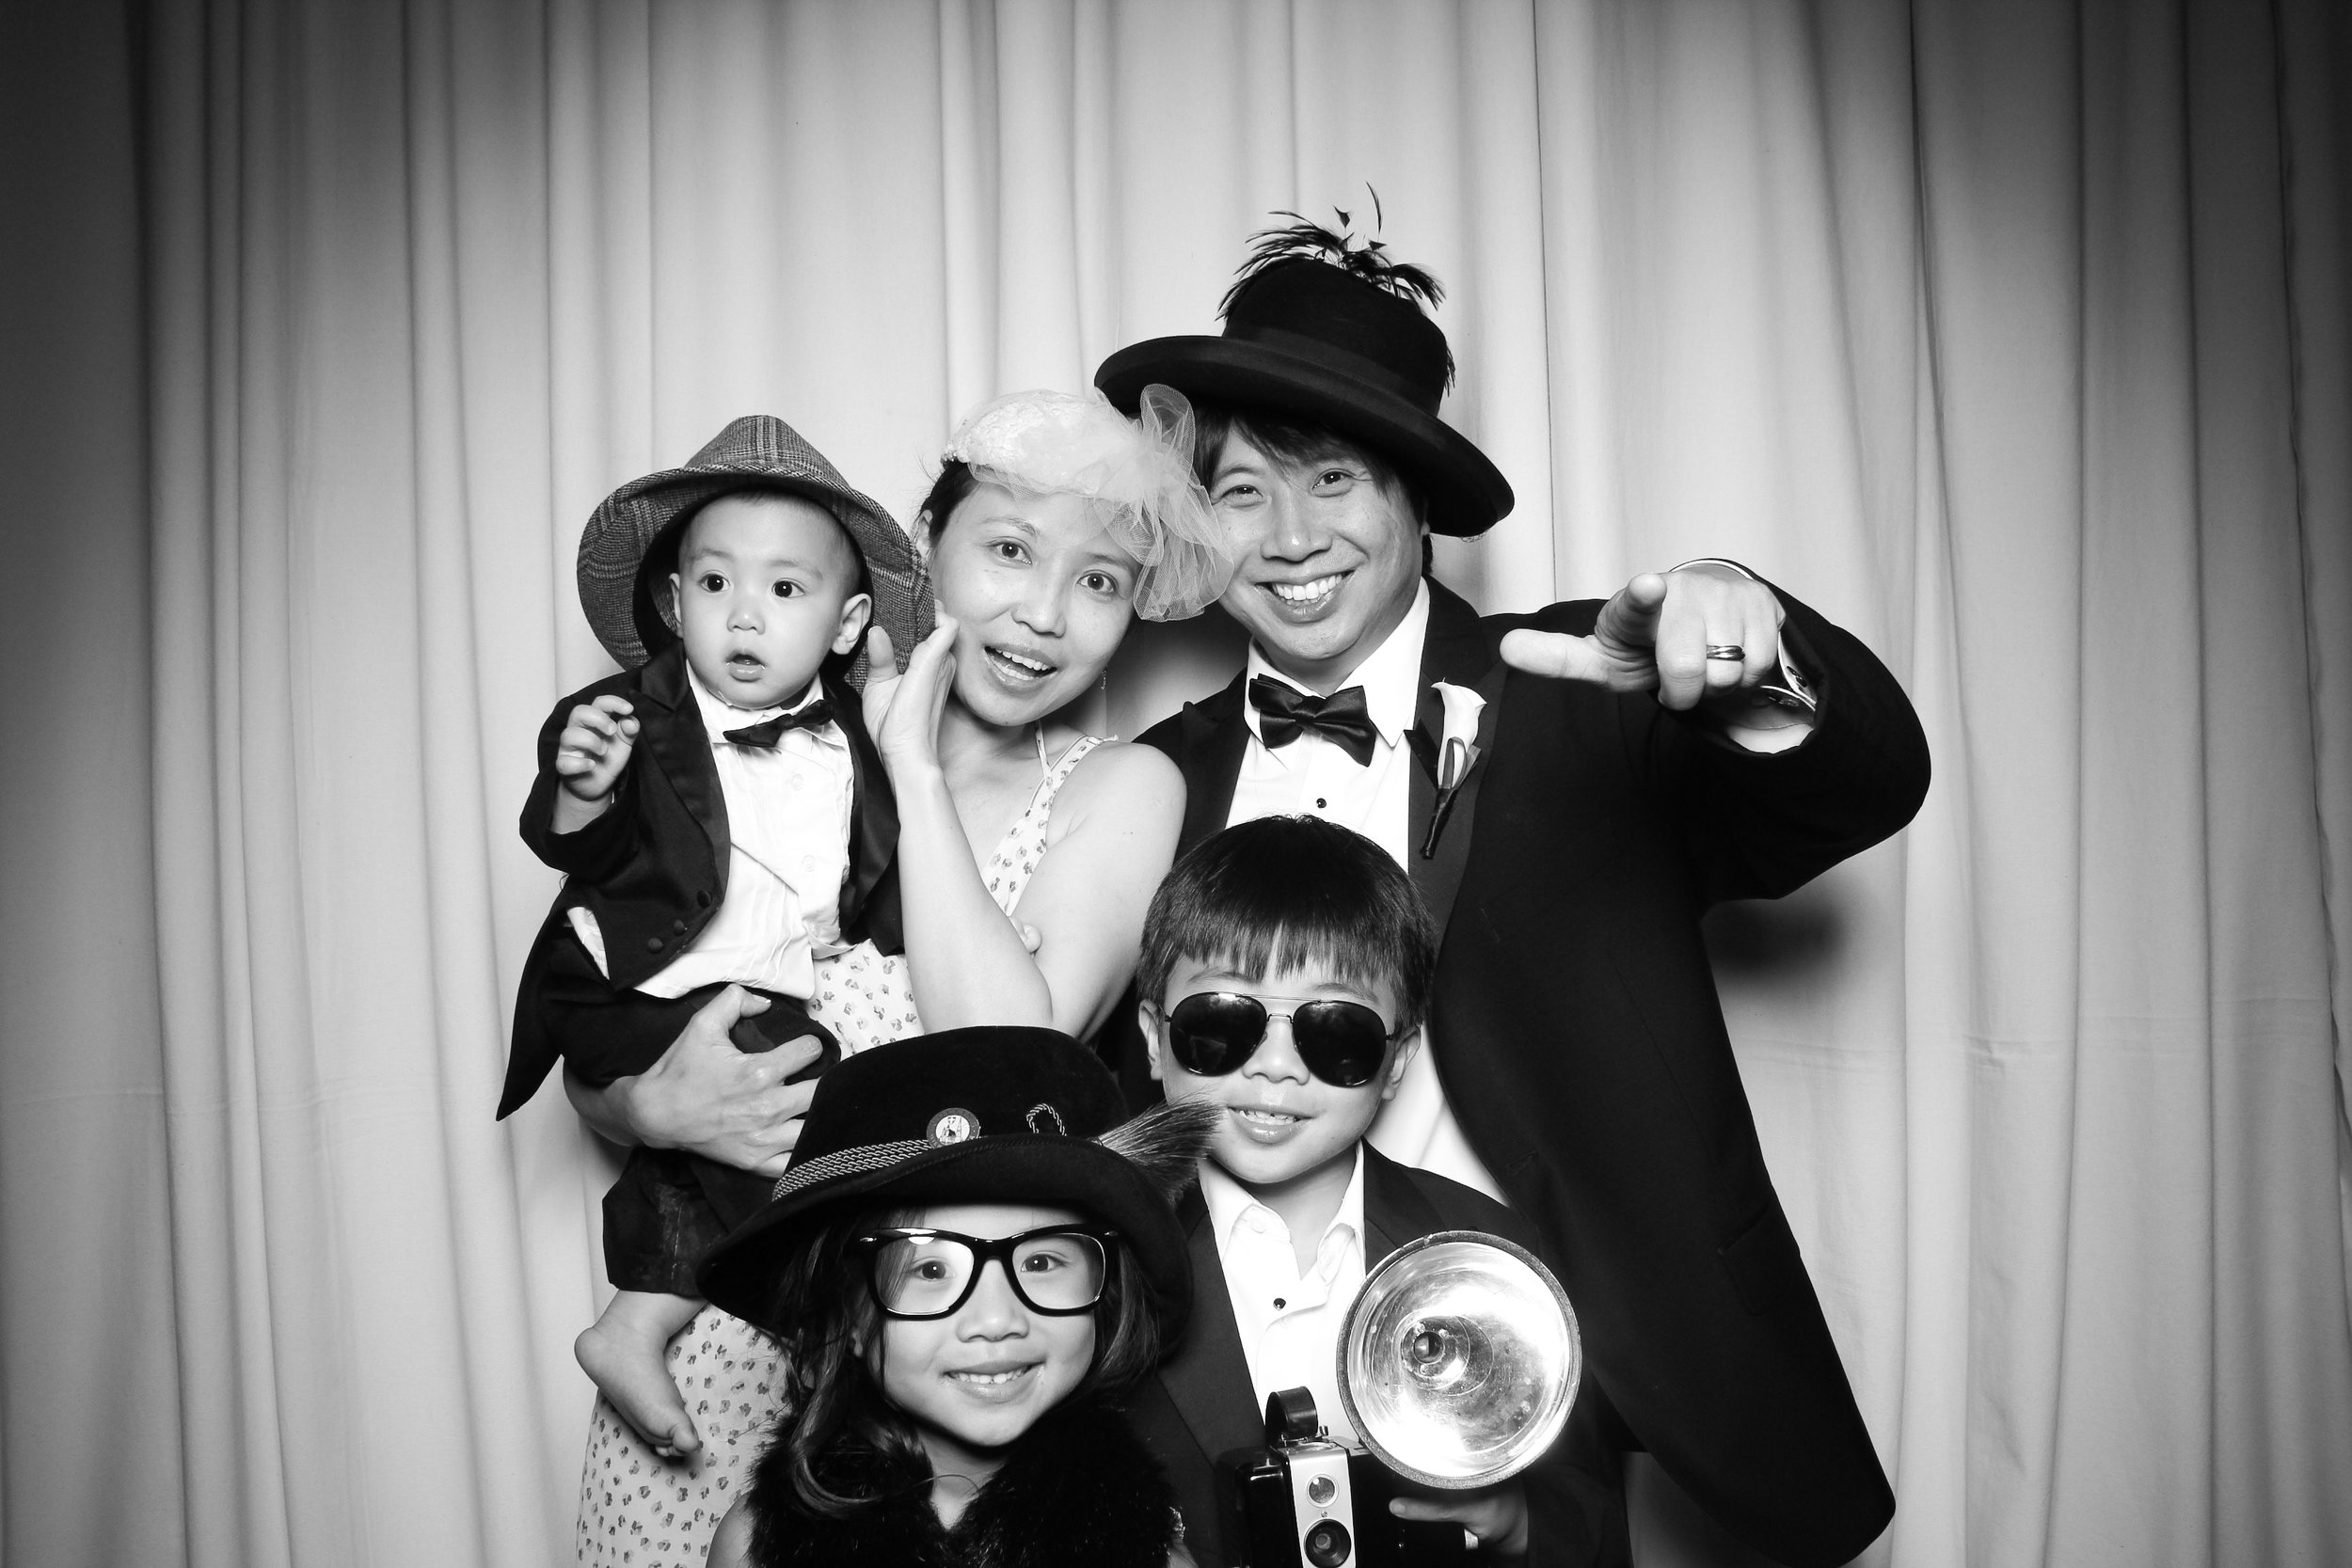 Fun family portrait with vintage style props at the Rookery Building!